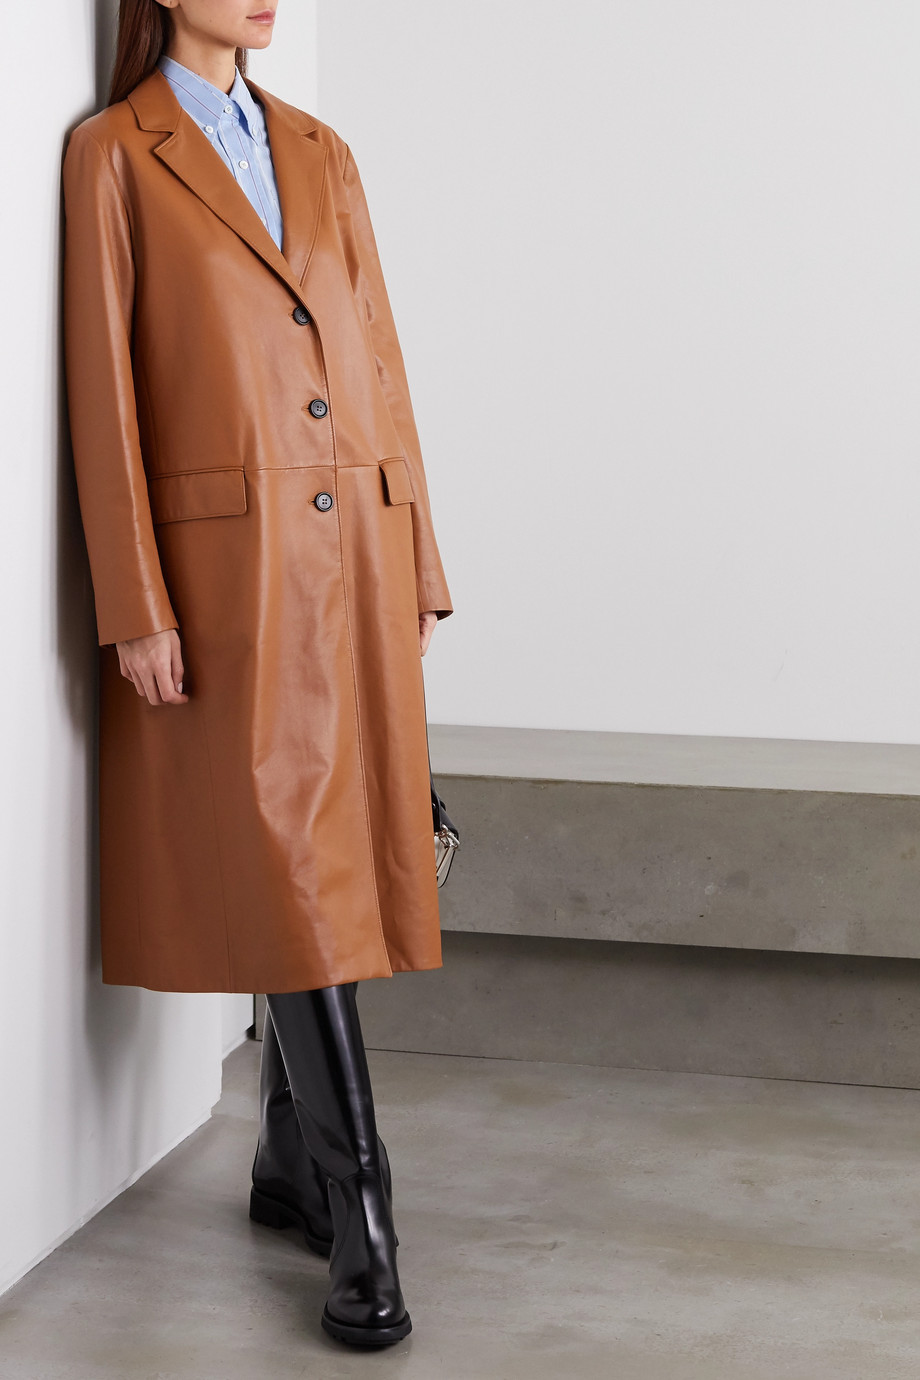 Prada Leather coat